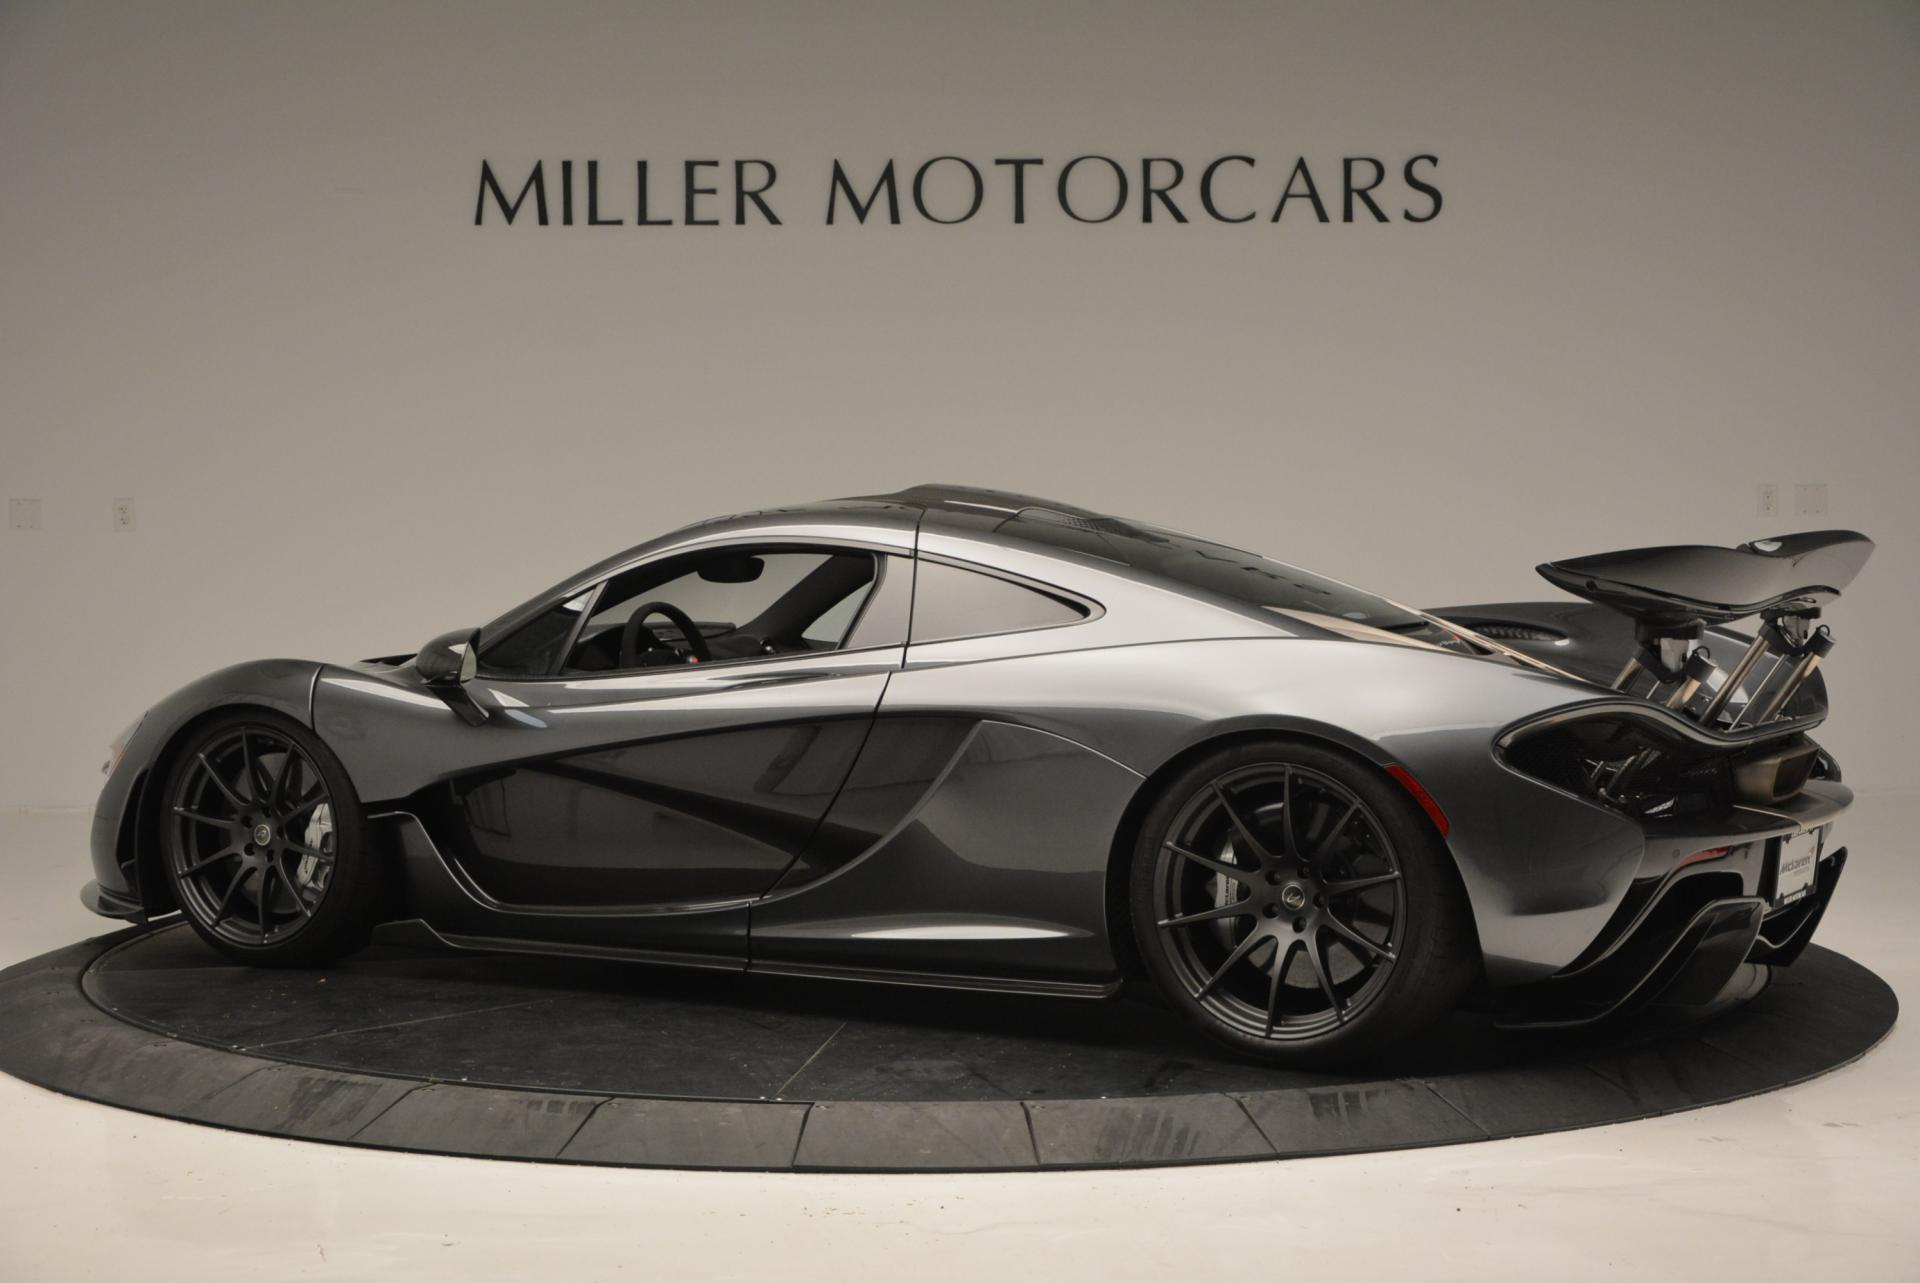 Used 2014 McLaren P1 Coupe For Sale In Greenwich, CT. Alfa Romeo of Greenwich, 3100 513_p4